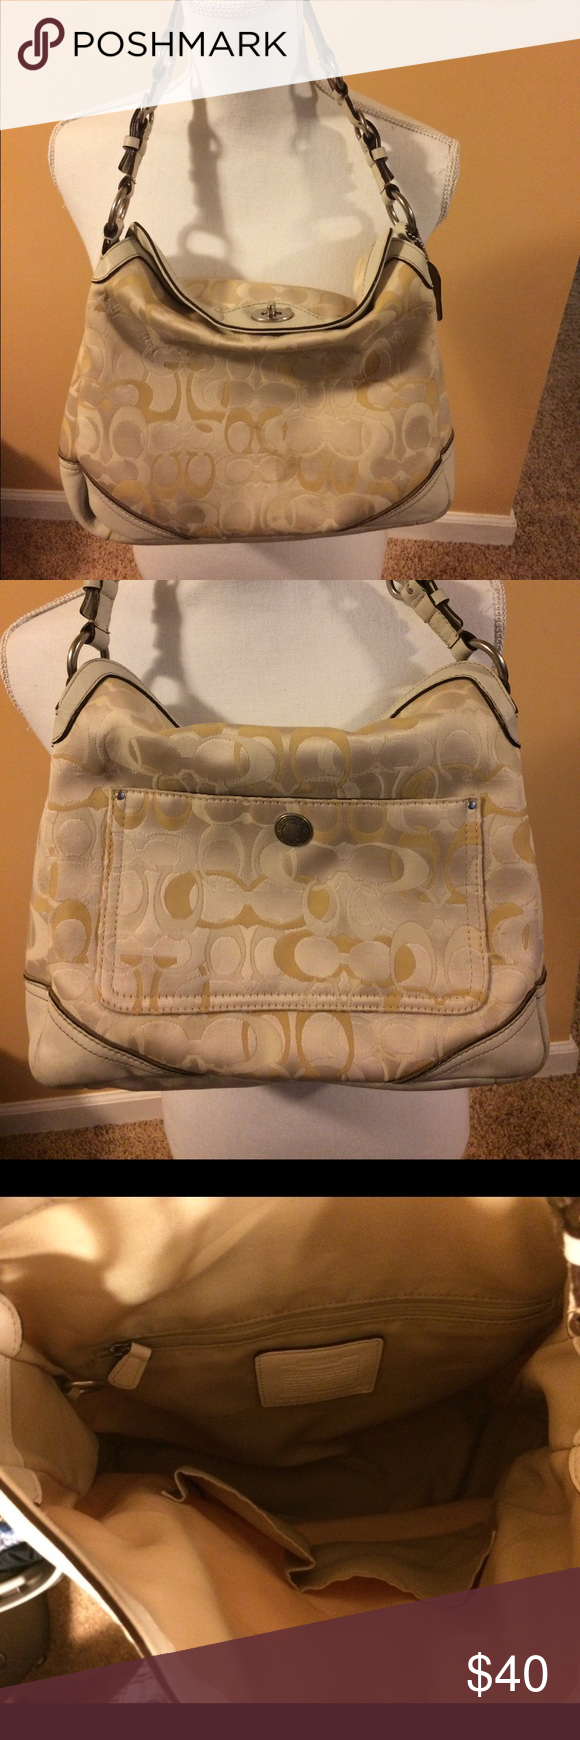 fe24a5cda2 Coach purse Cream coach purse. In good condition, some wear and tear and a  small pen mark on front of bag. Smoke and pet free home. Coach Bags